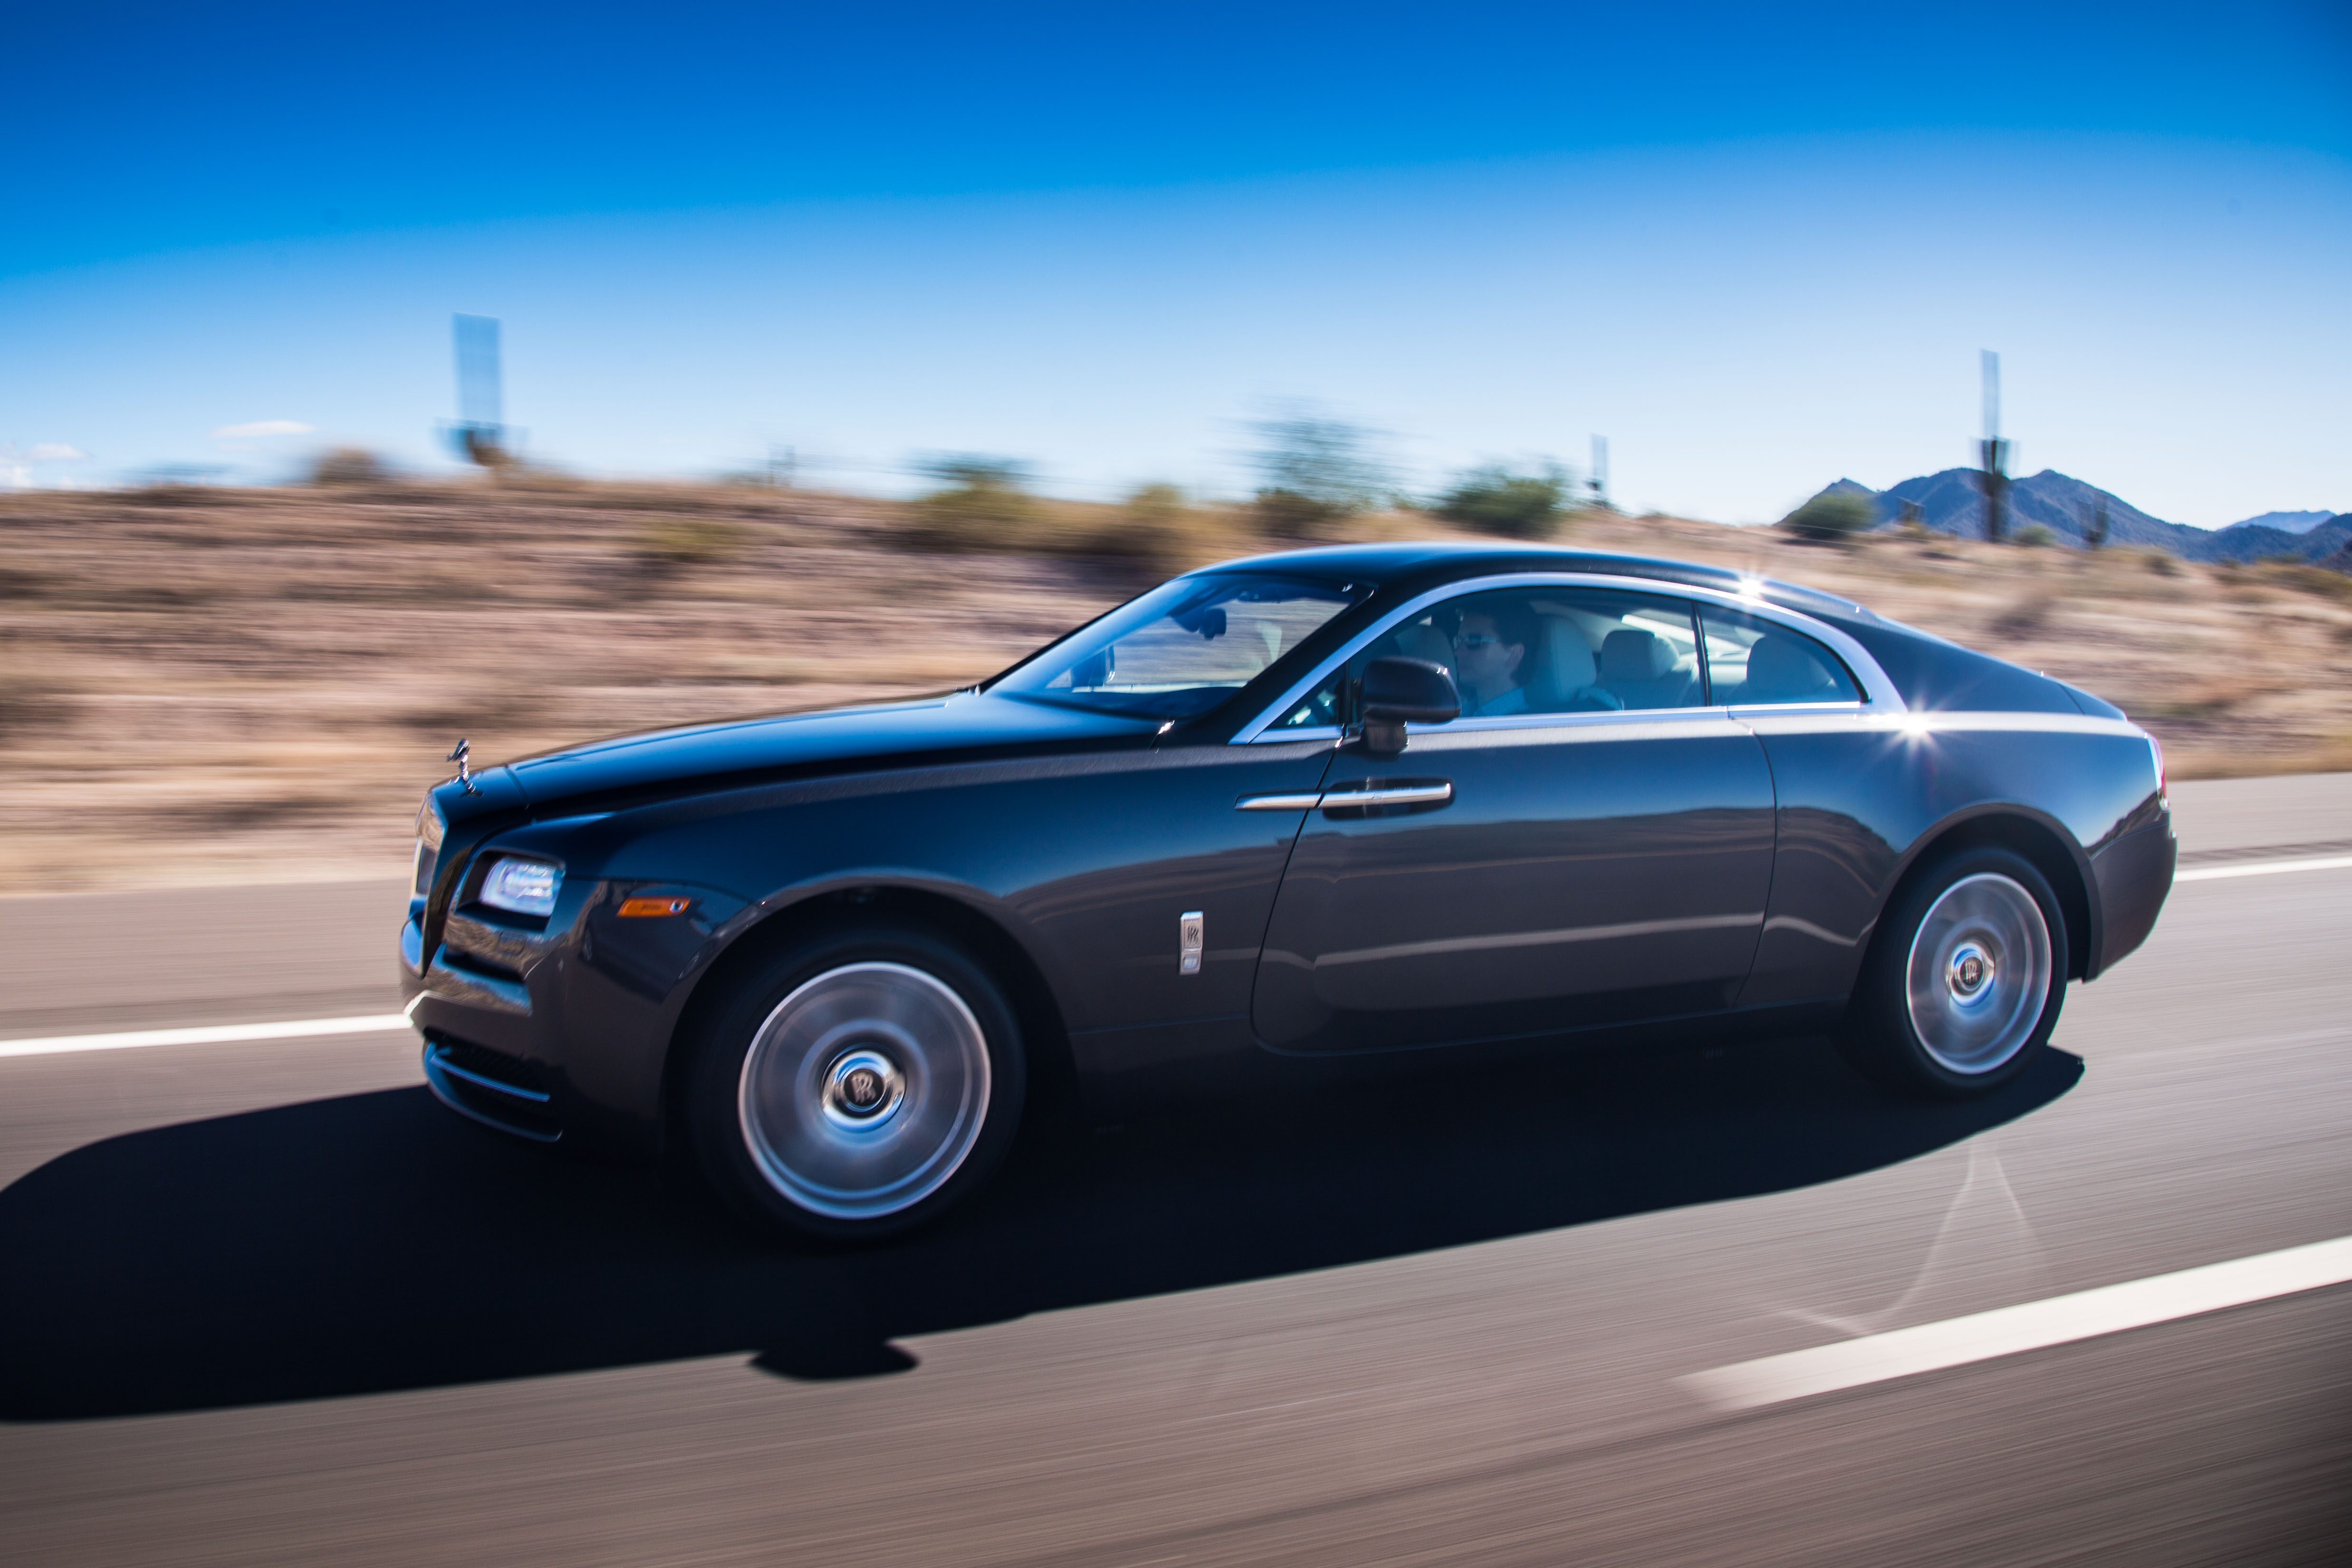 BL8A1409 Exclusive: 2013 Rolls Royce Wraith   All You Need to Know